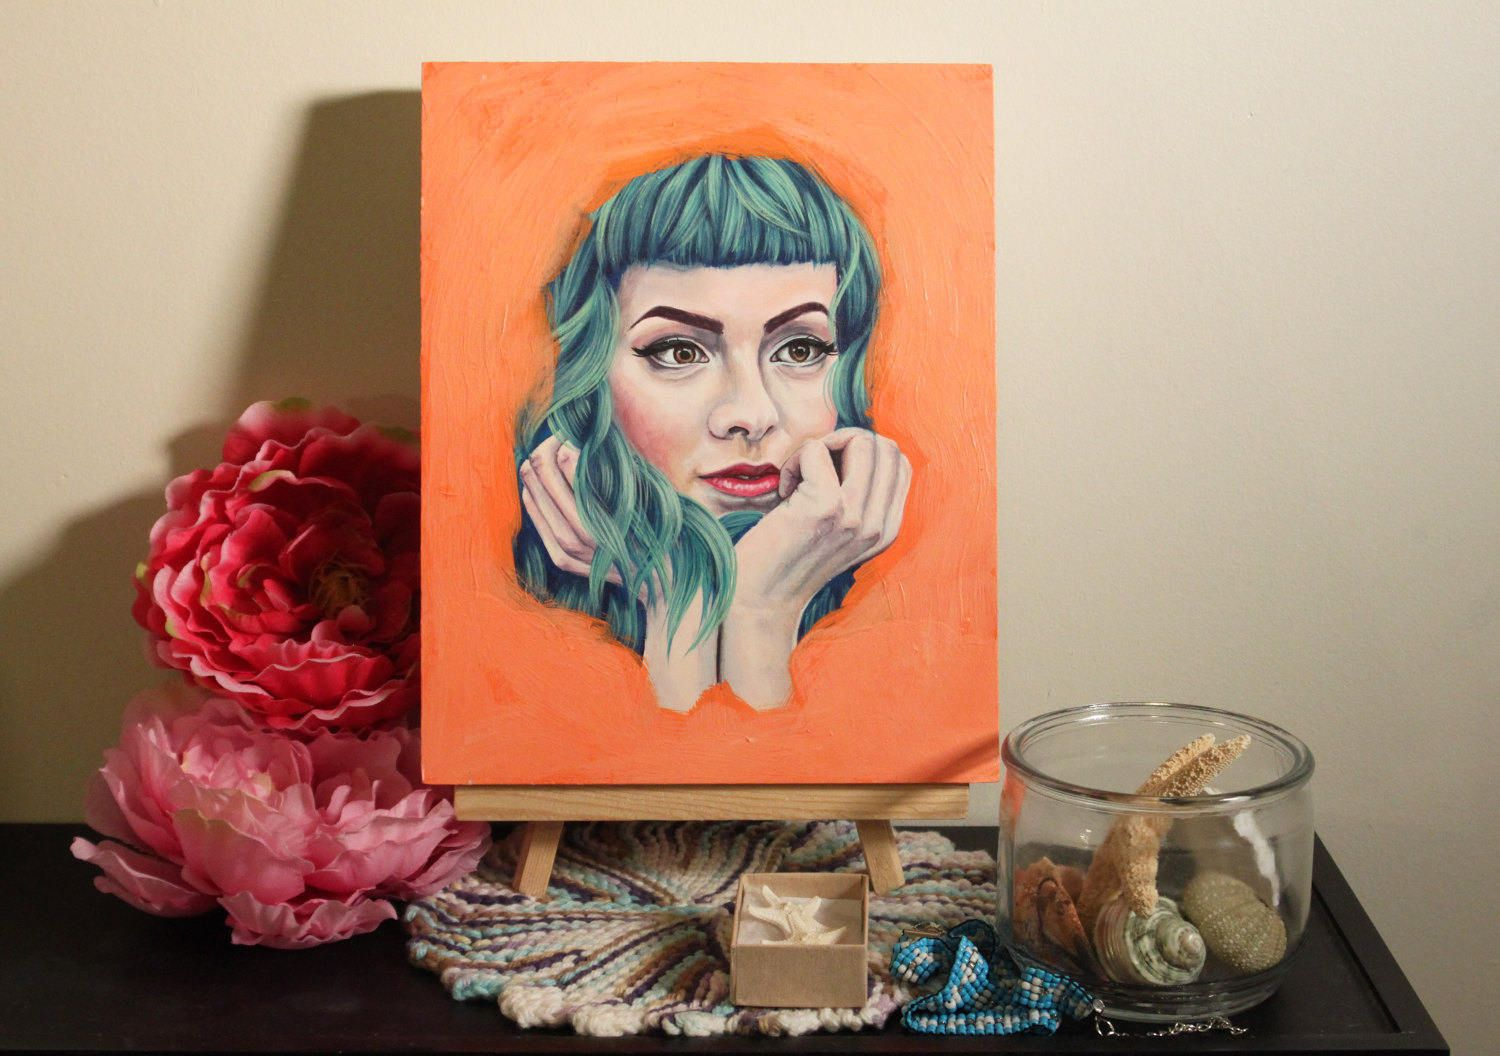 Dream Girl, 8 x 10 acrylic portrait painting by EHollingsheadArtwork on Etsy